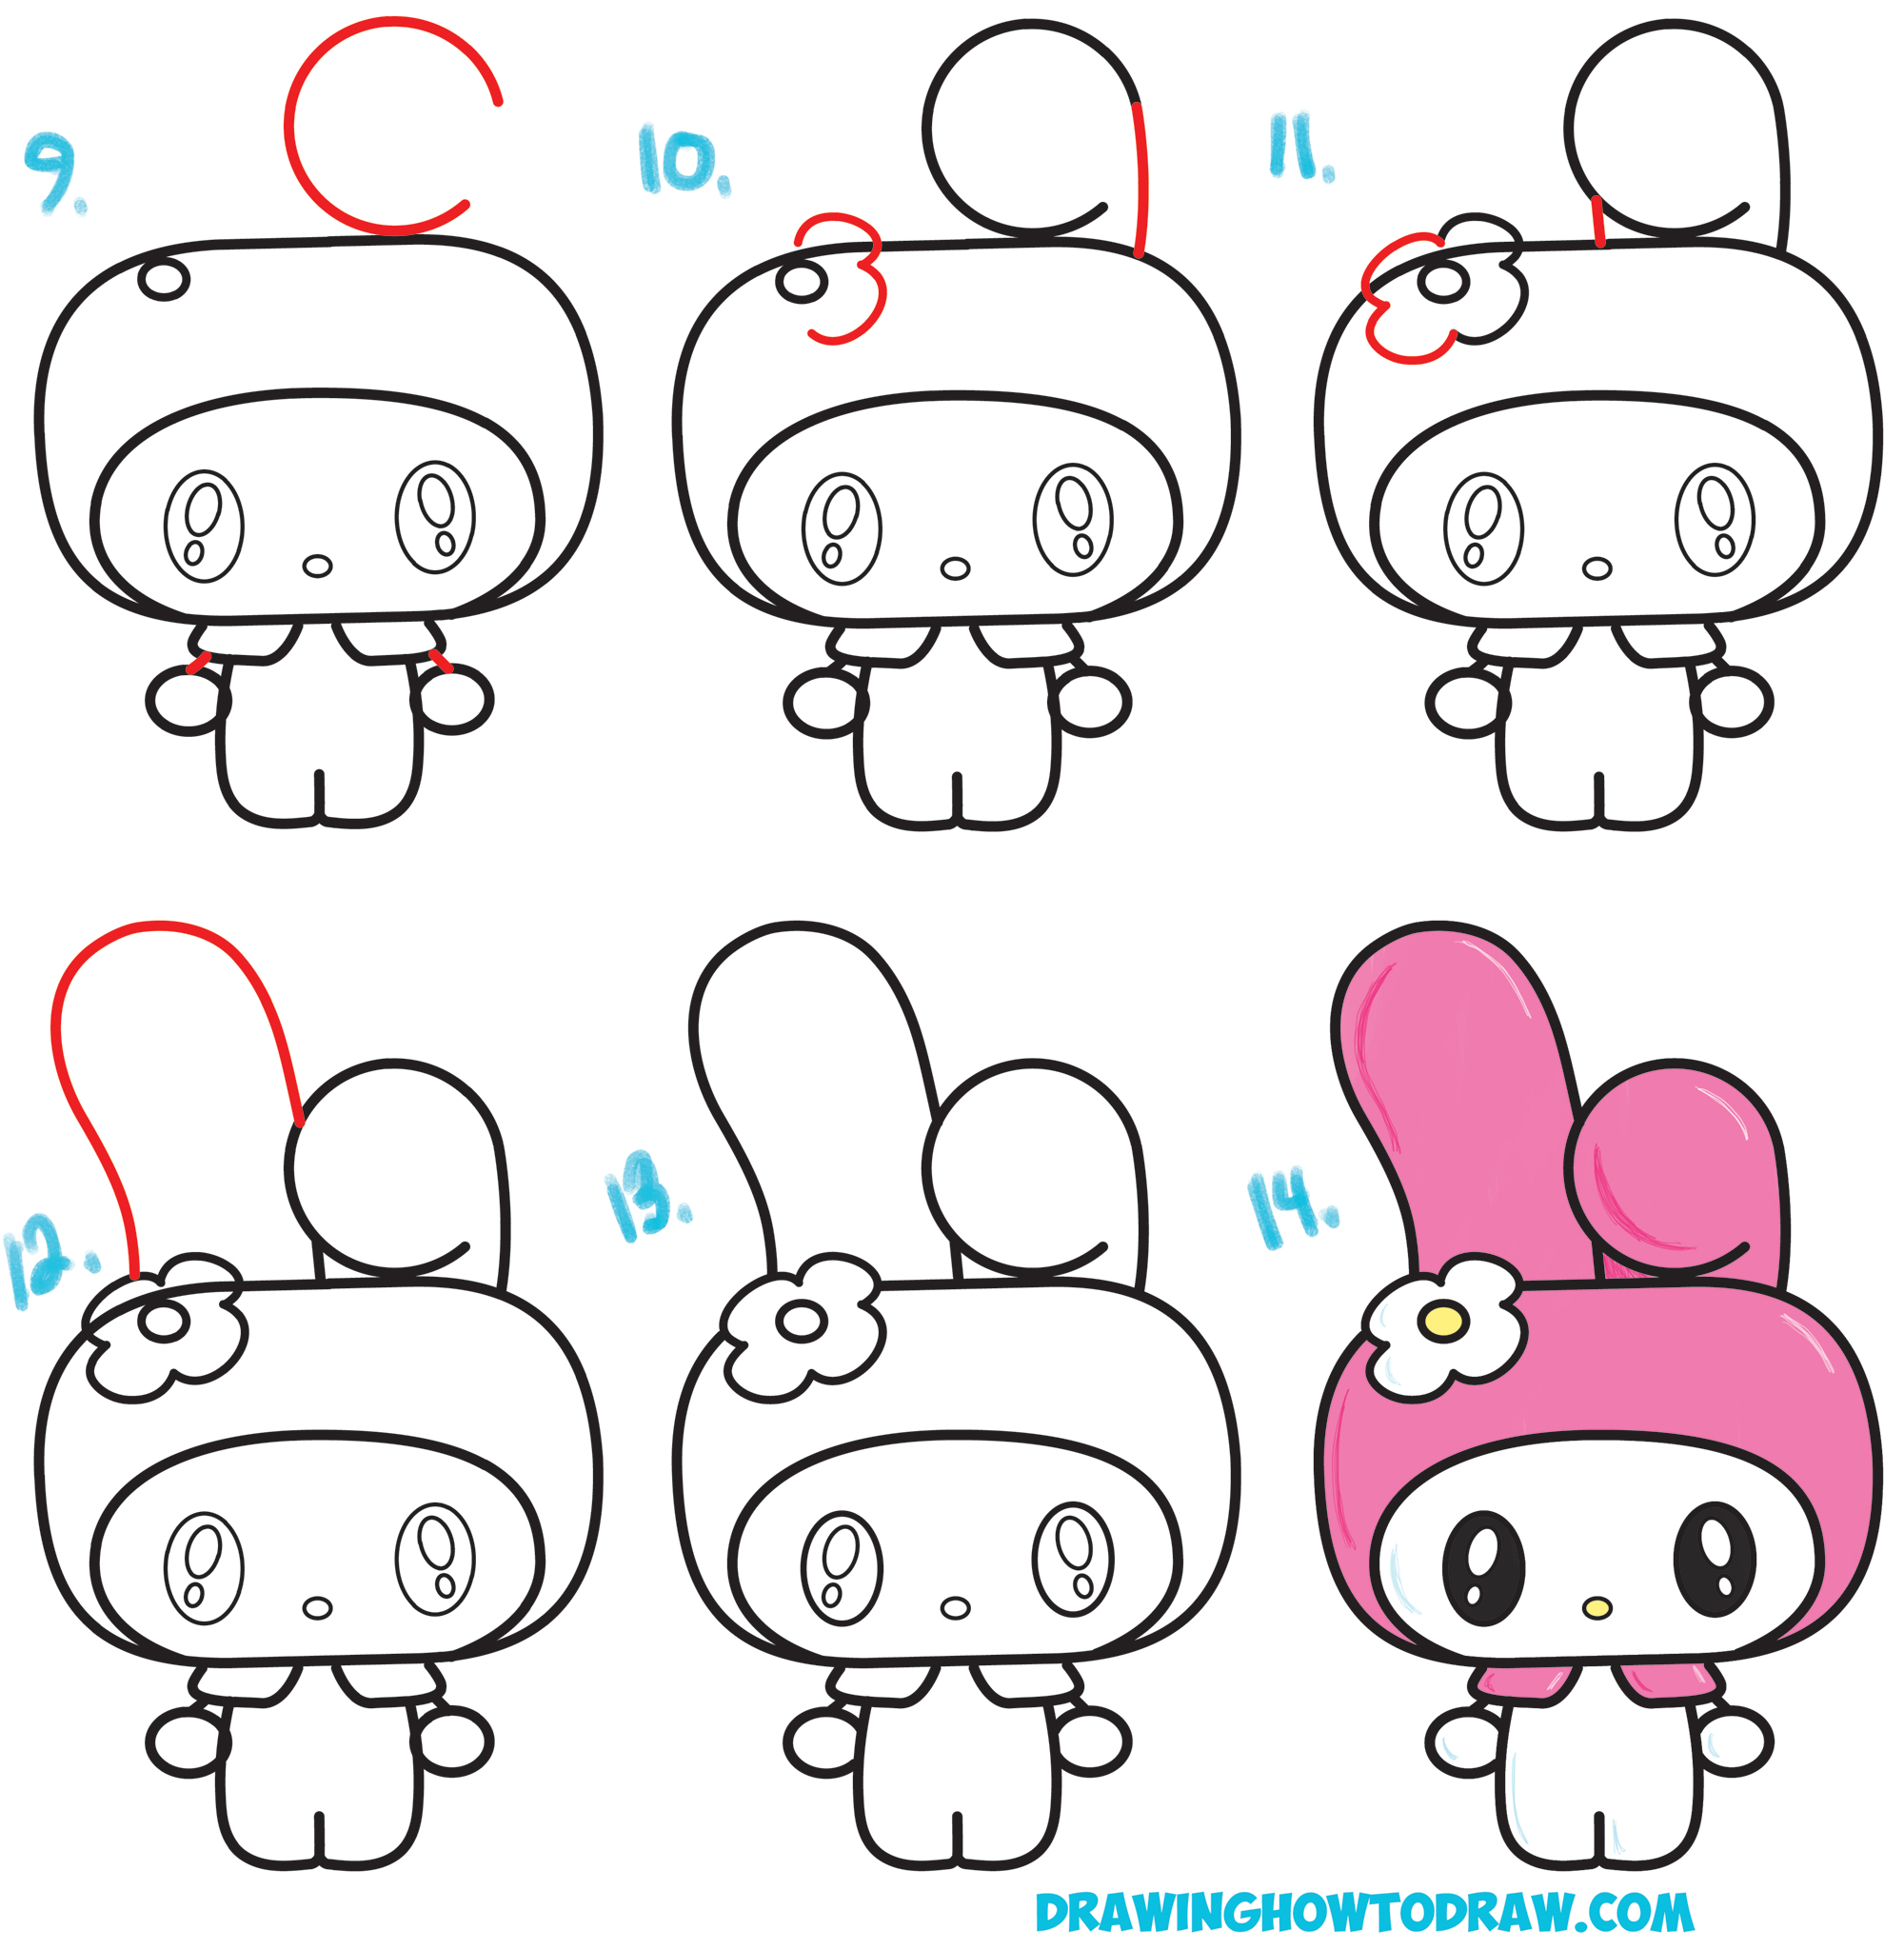 Learn How to Draw Kawaii / Chibi My Melody from Hello Kitty : A Cute Bunny with a Hood on - Simple Step by Step Drawing Tutorial for Beginners